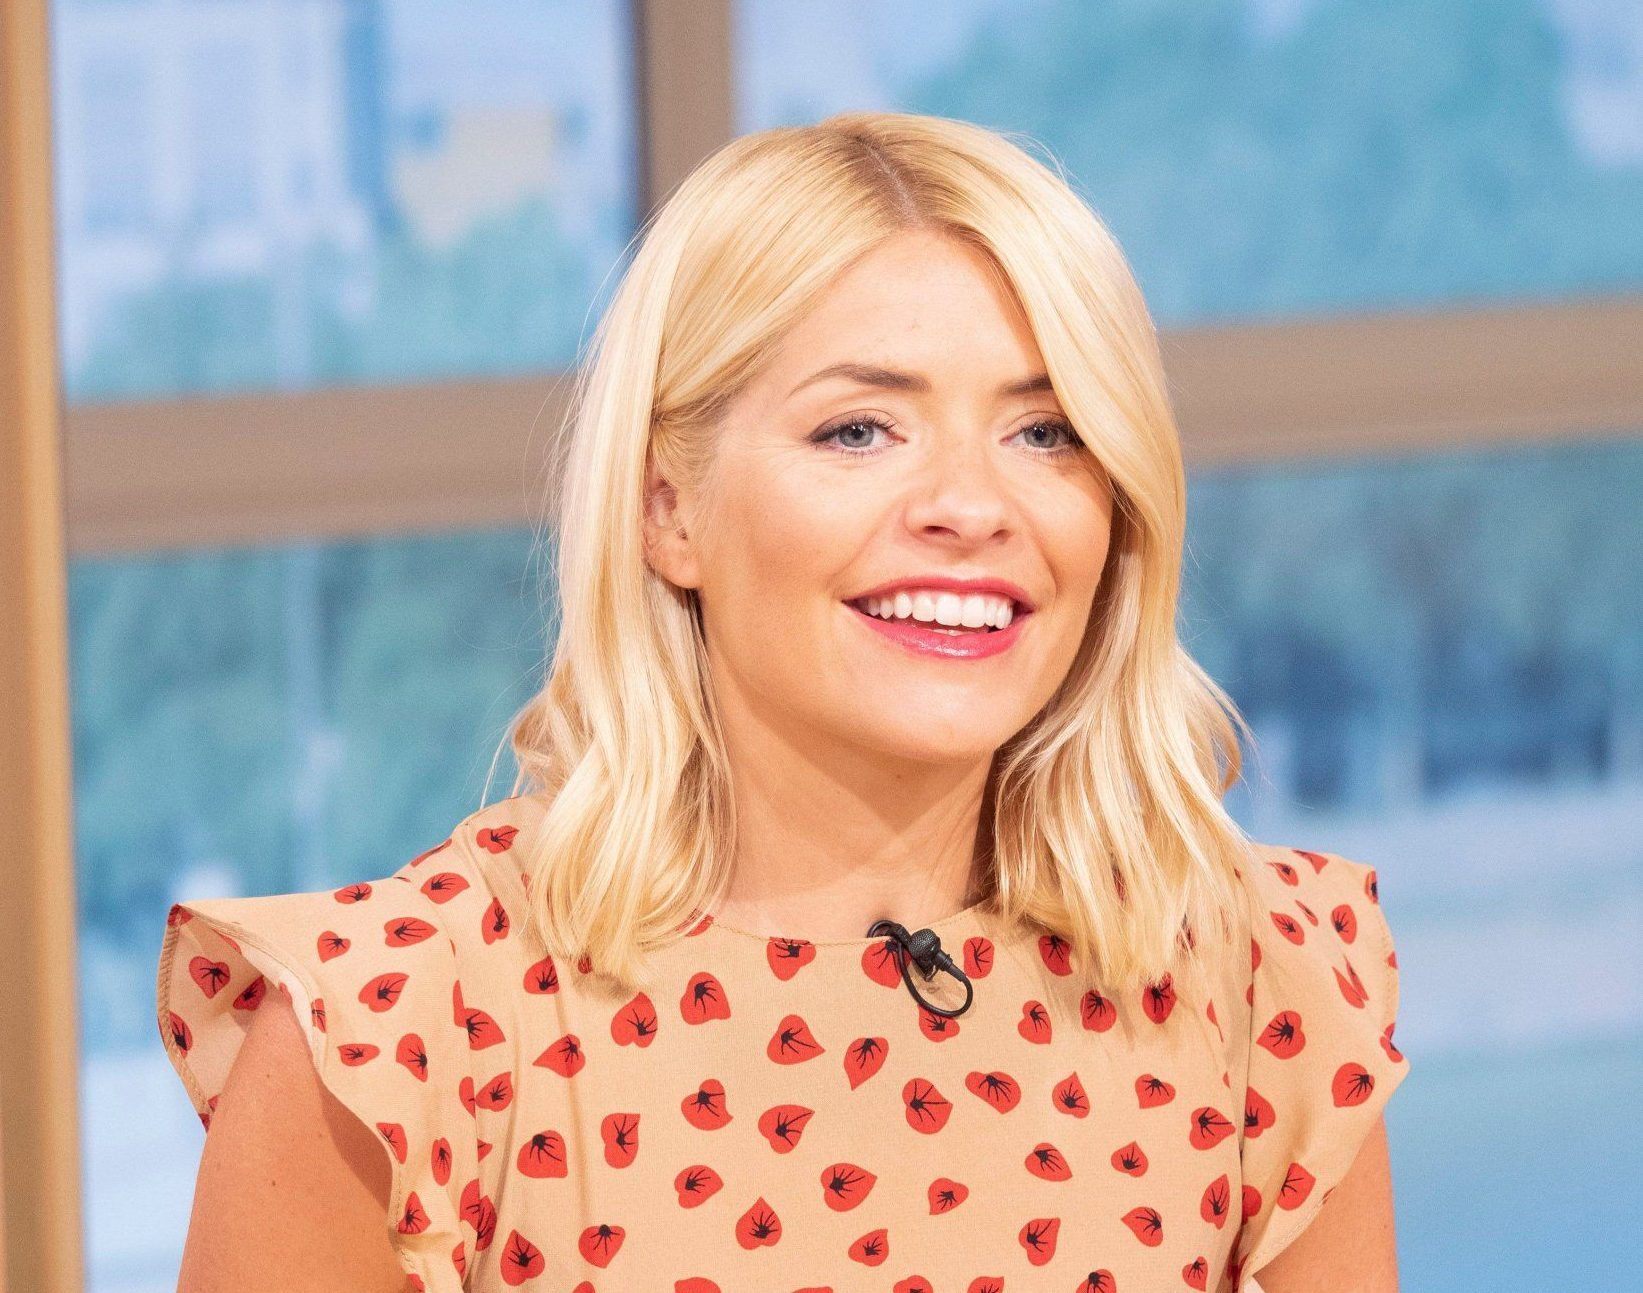 EDITORIAL USE ONLY. NO MERCHANDISING Mandatory Credit: Photo by Ken McKay/ITV/REX/Shutterstock (9732591bl) Holly Willoughby 'This Morning' TV show, London, UK - 02 Jul 2018